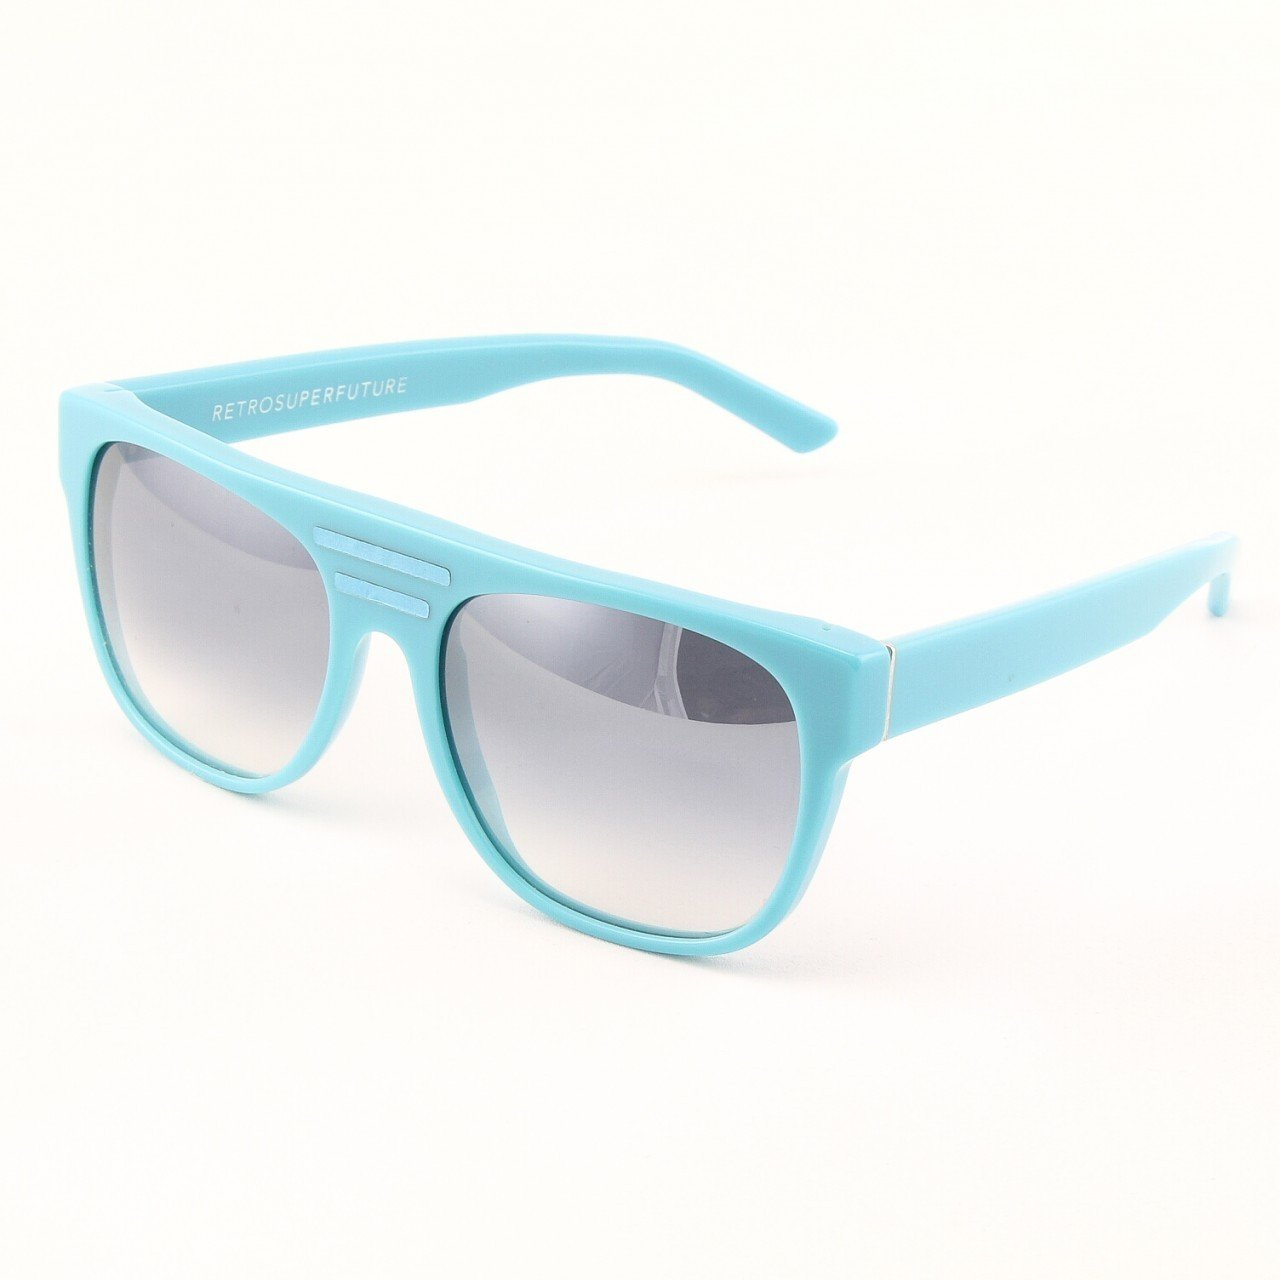 Super Flat Top 229/2 Sunglasses Sky Blue with Blue Gradient Lenses by RETROSUPERFUTURE